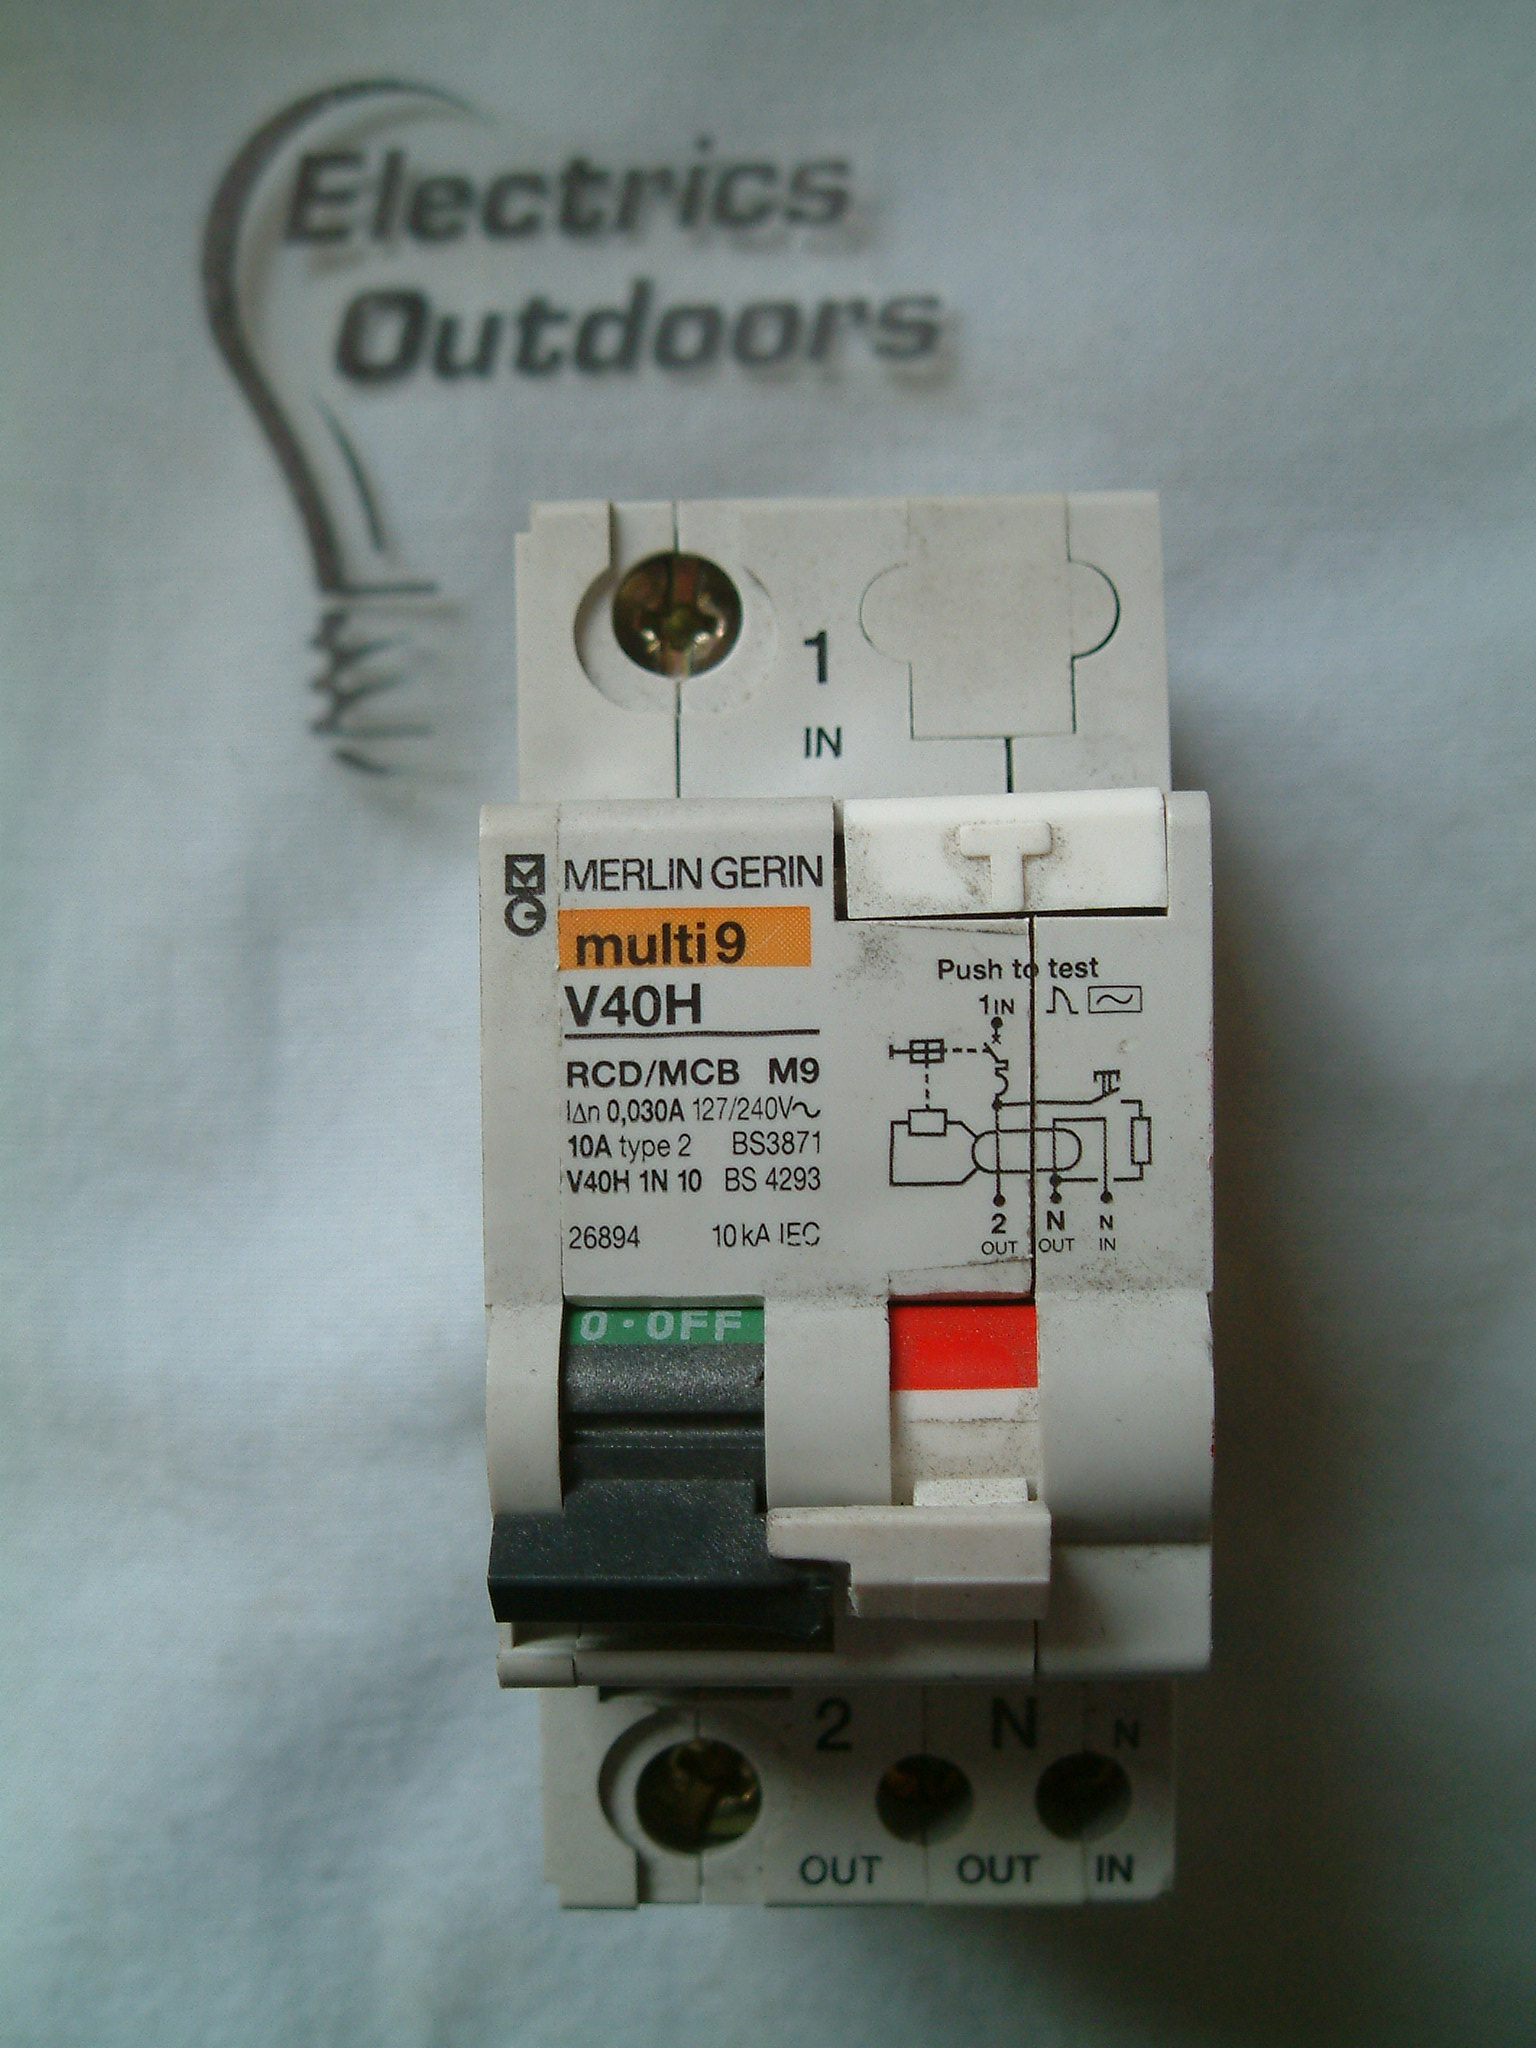 MERLIN GERIN 10 AMP TYPE 2 M9 30 mA DOUBLE POLE RCBO RCD MCB 127